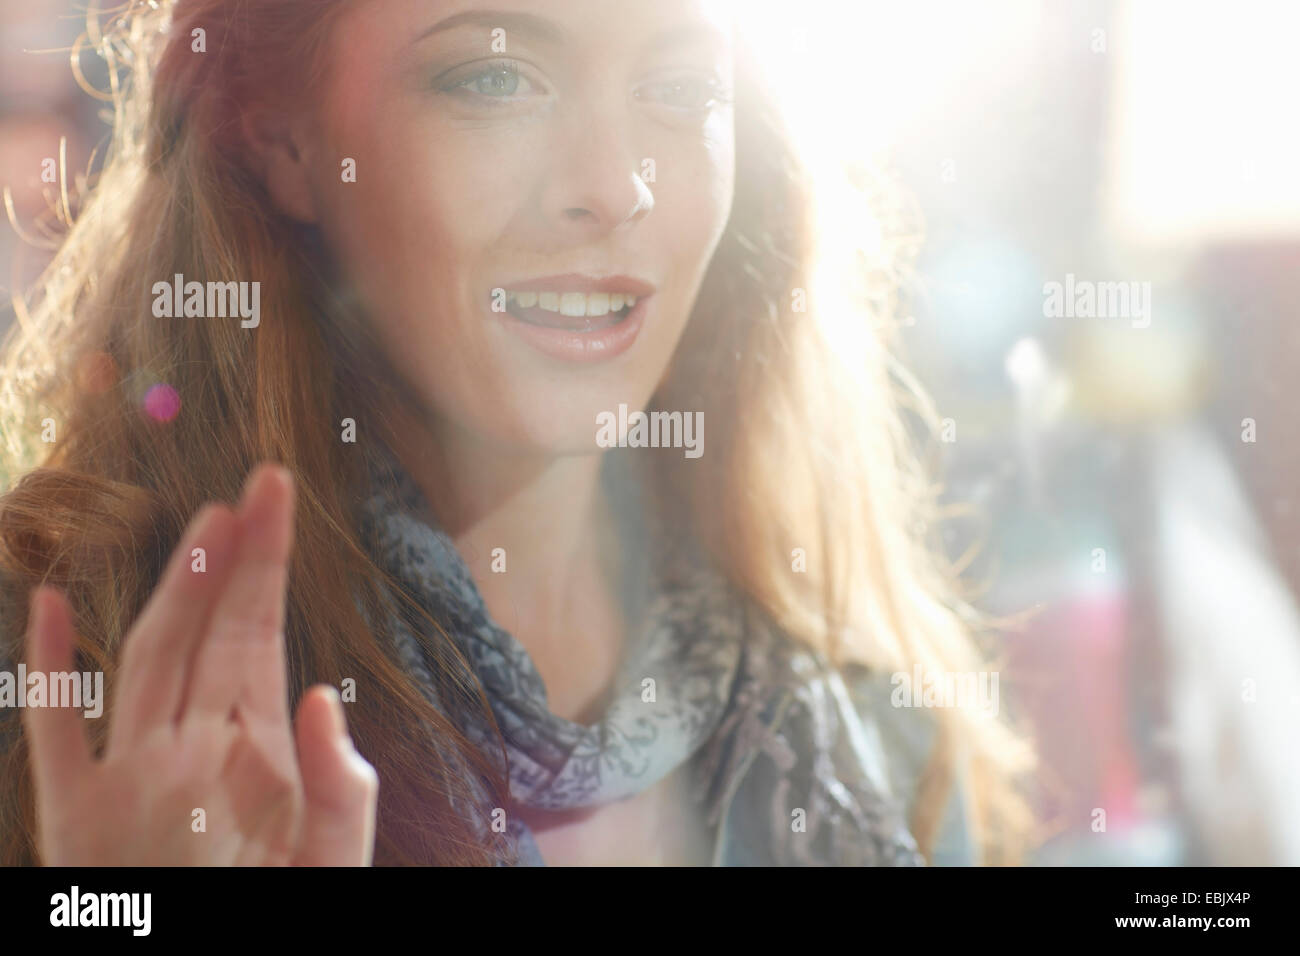 Young woman looking in shop window - Stock Image